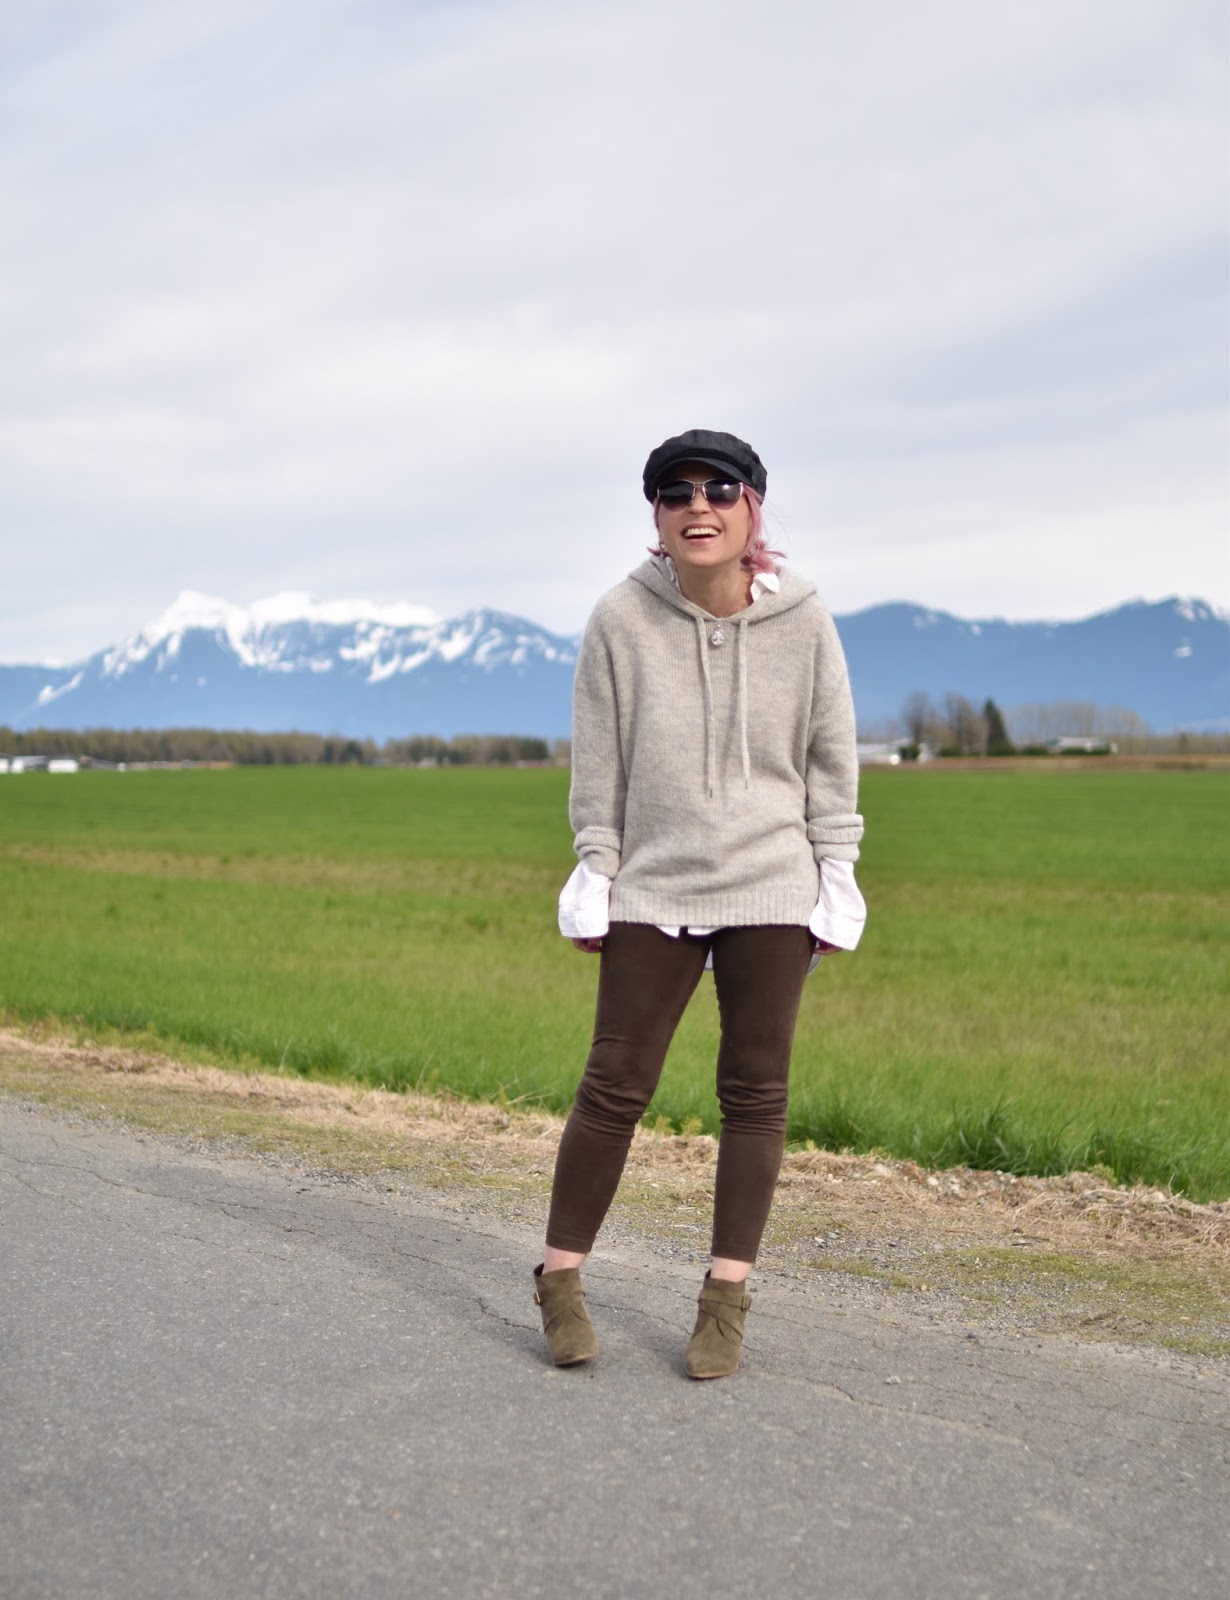 Monika Faulkner outfit inspiration - styling vegan suede leggings with ankle boots, a hoodie sweater, and a baker boy hat